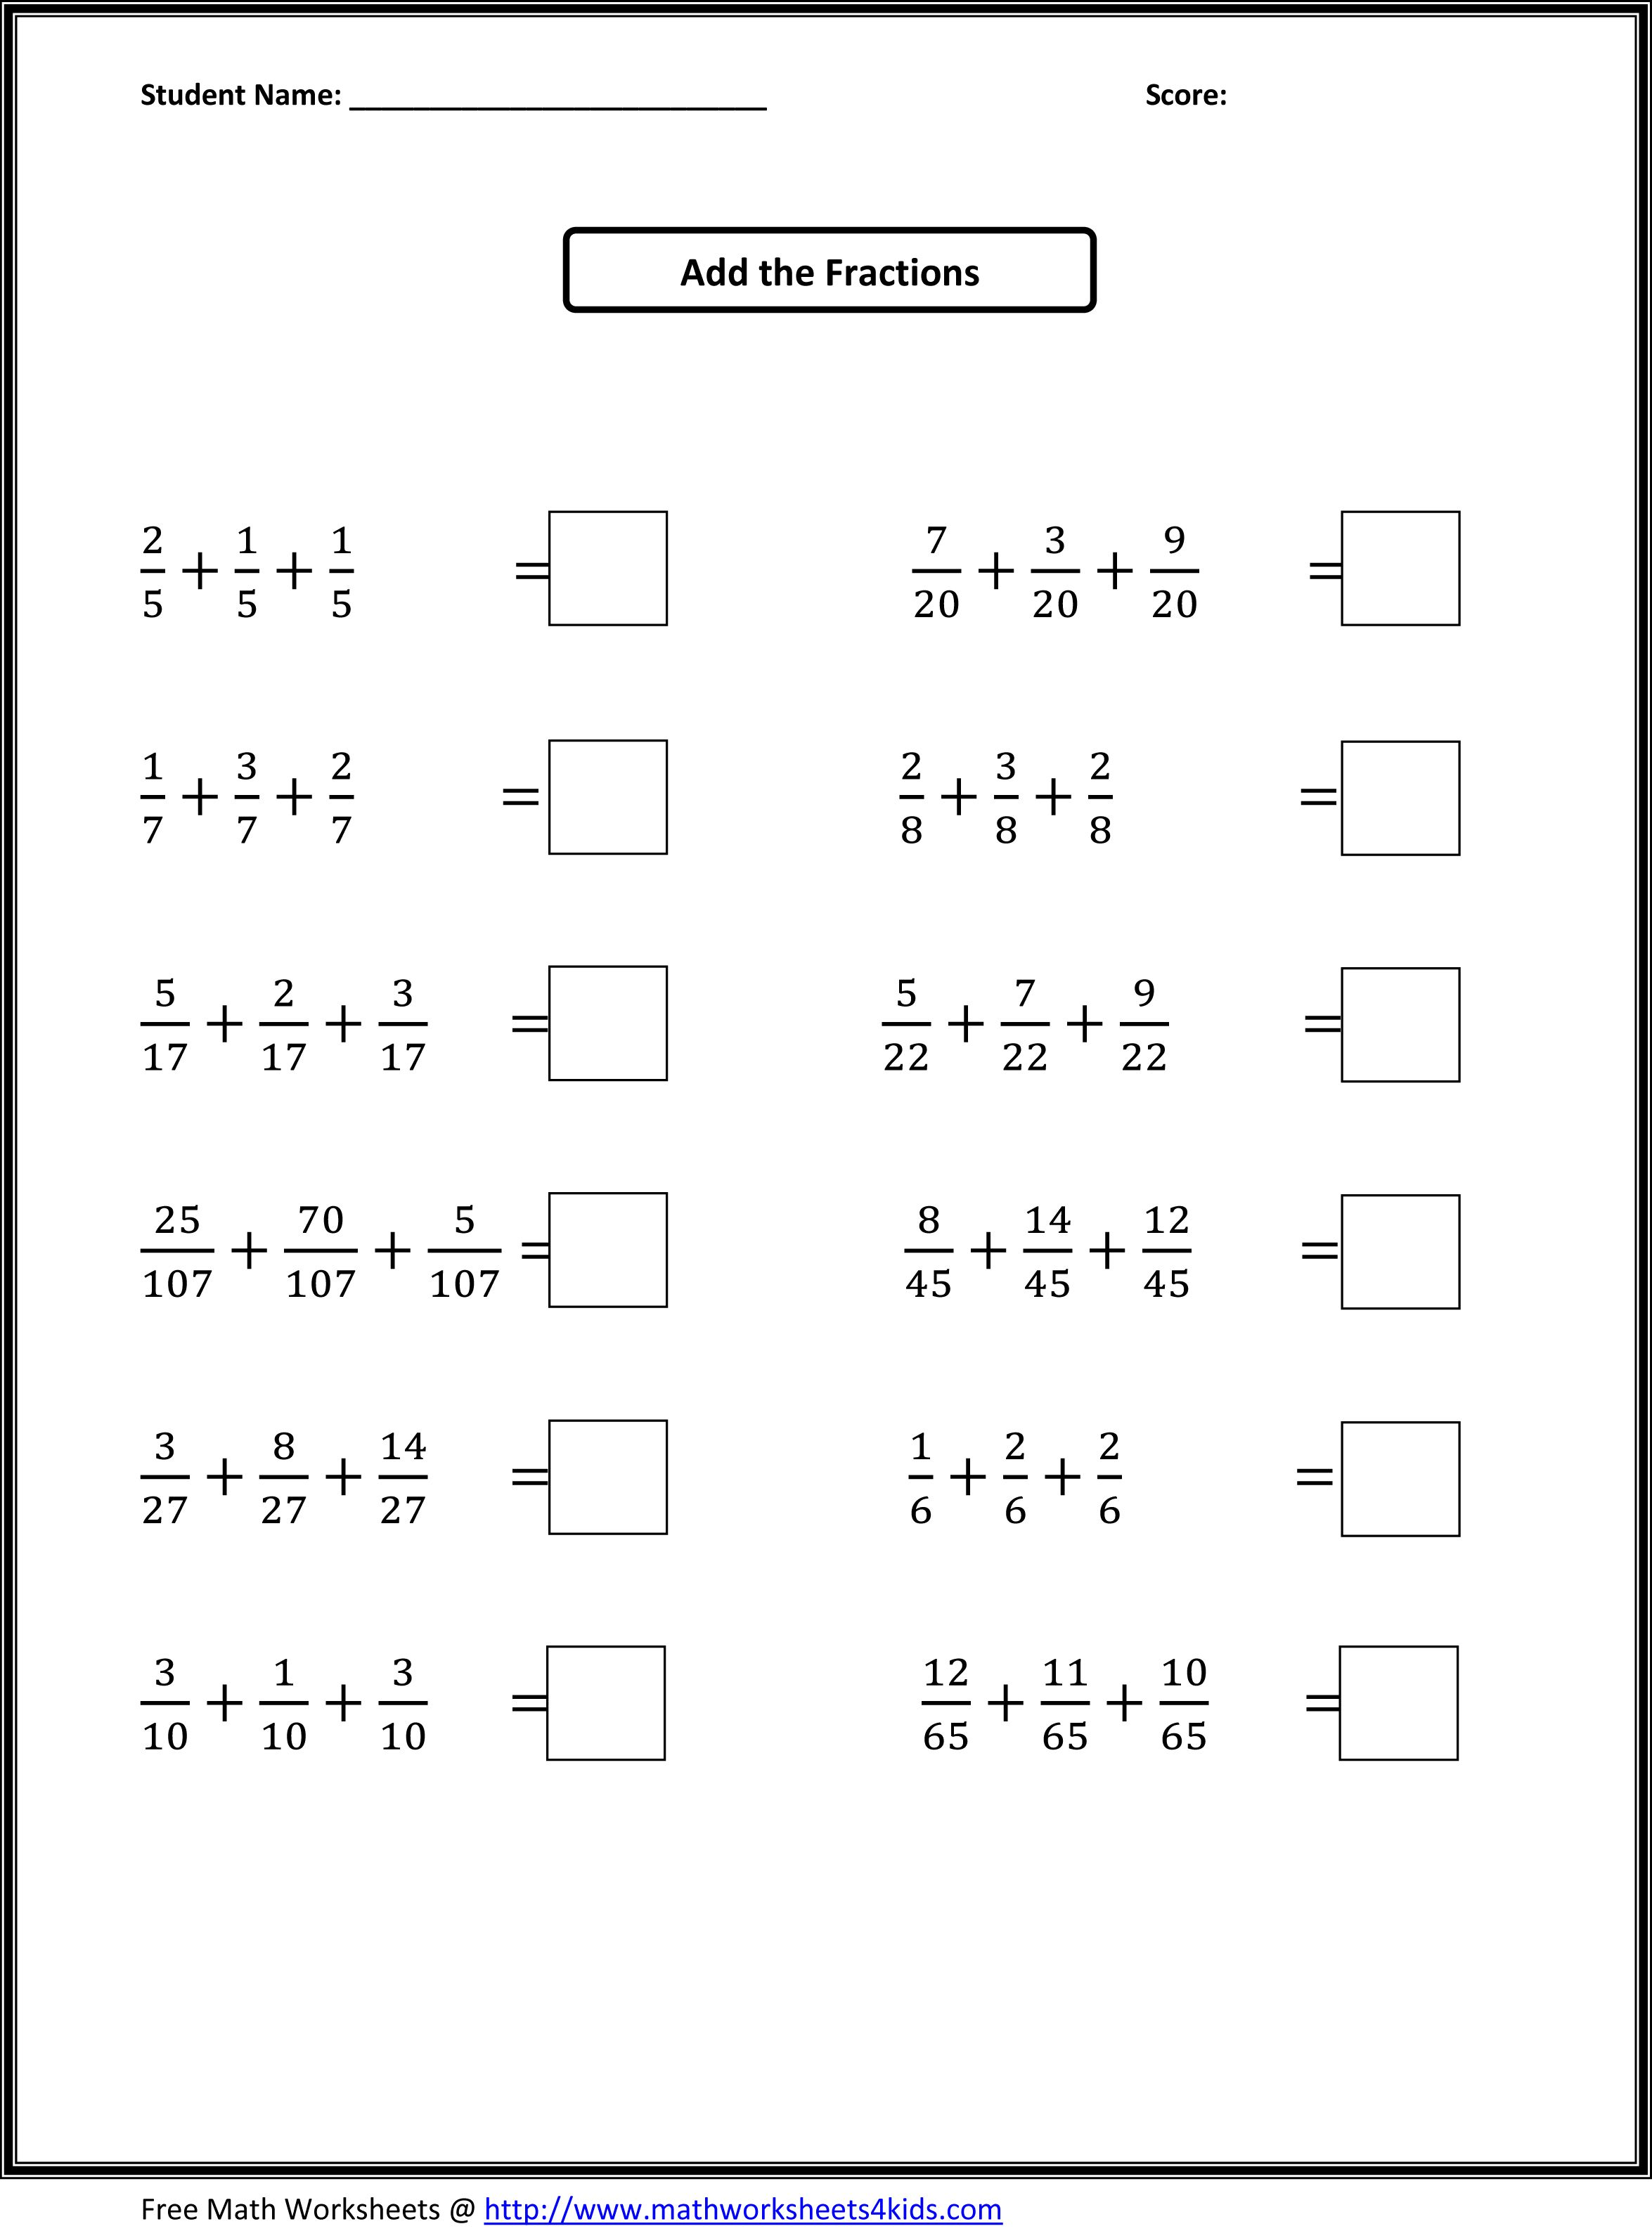 Worksheet Math Worksheets For Fractions math worksheets for grade 5 fractions coffemix pichaglobal